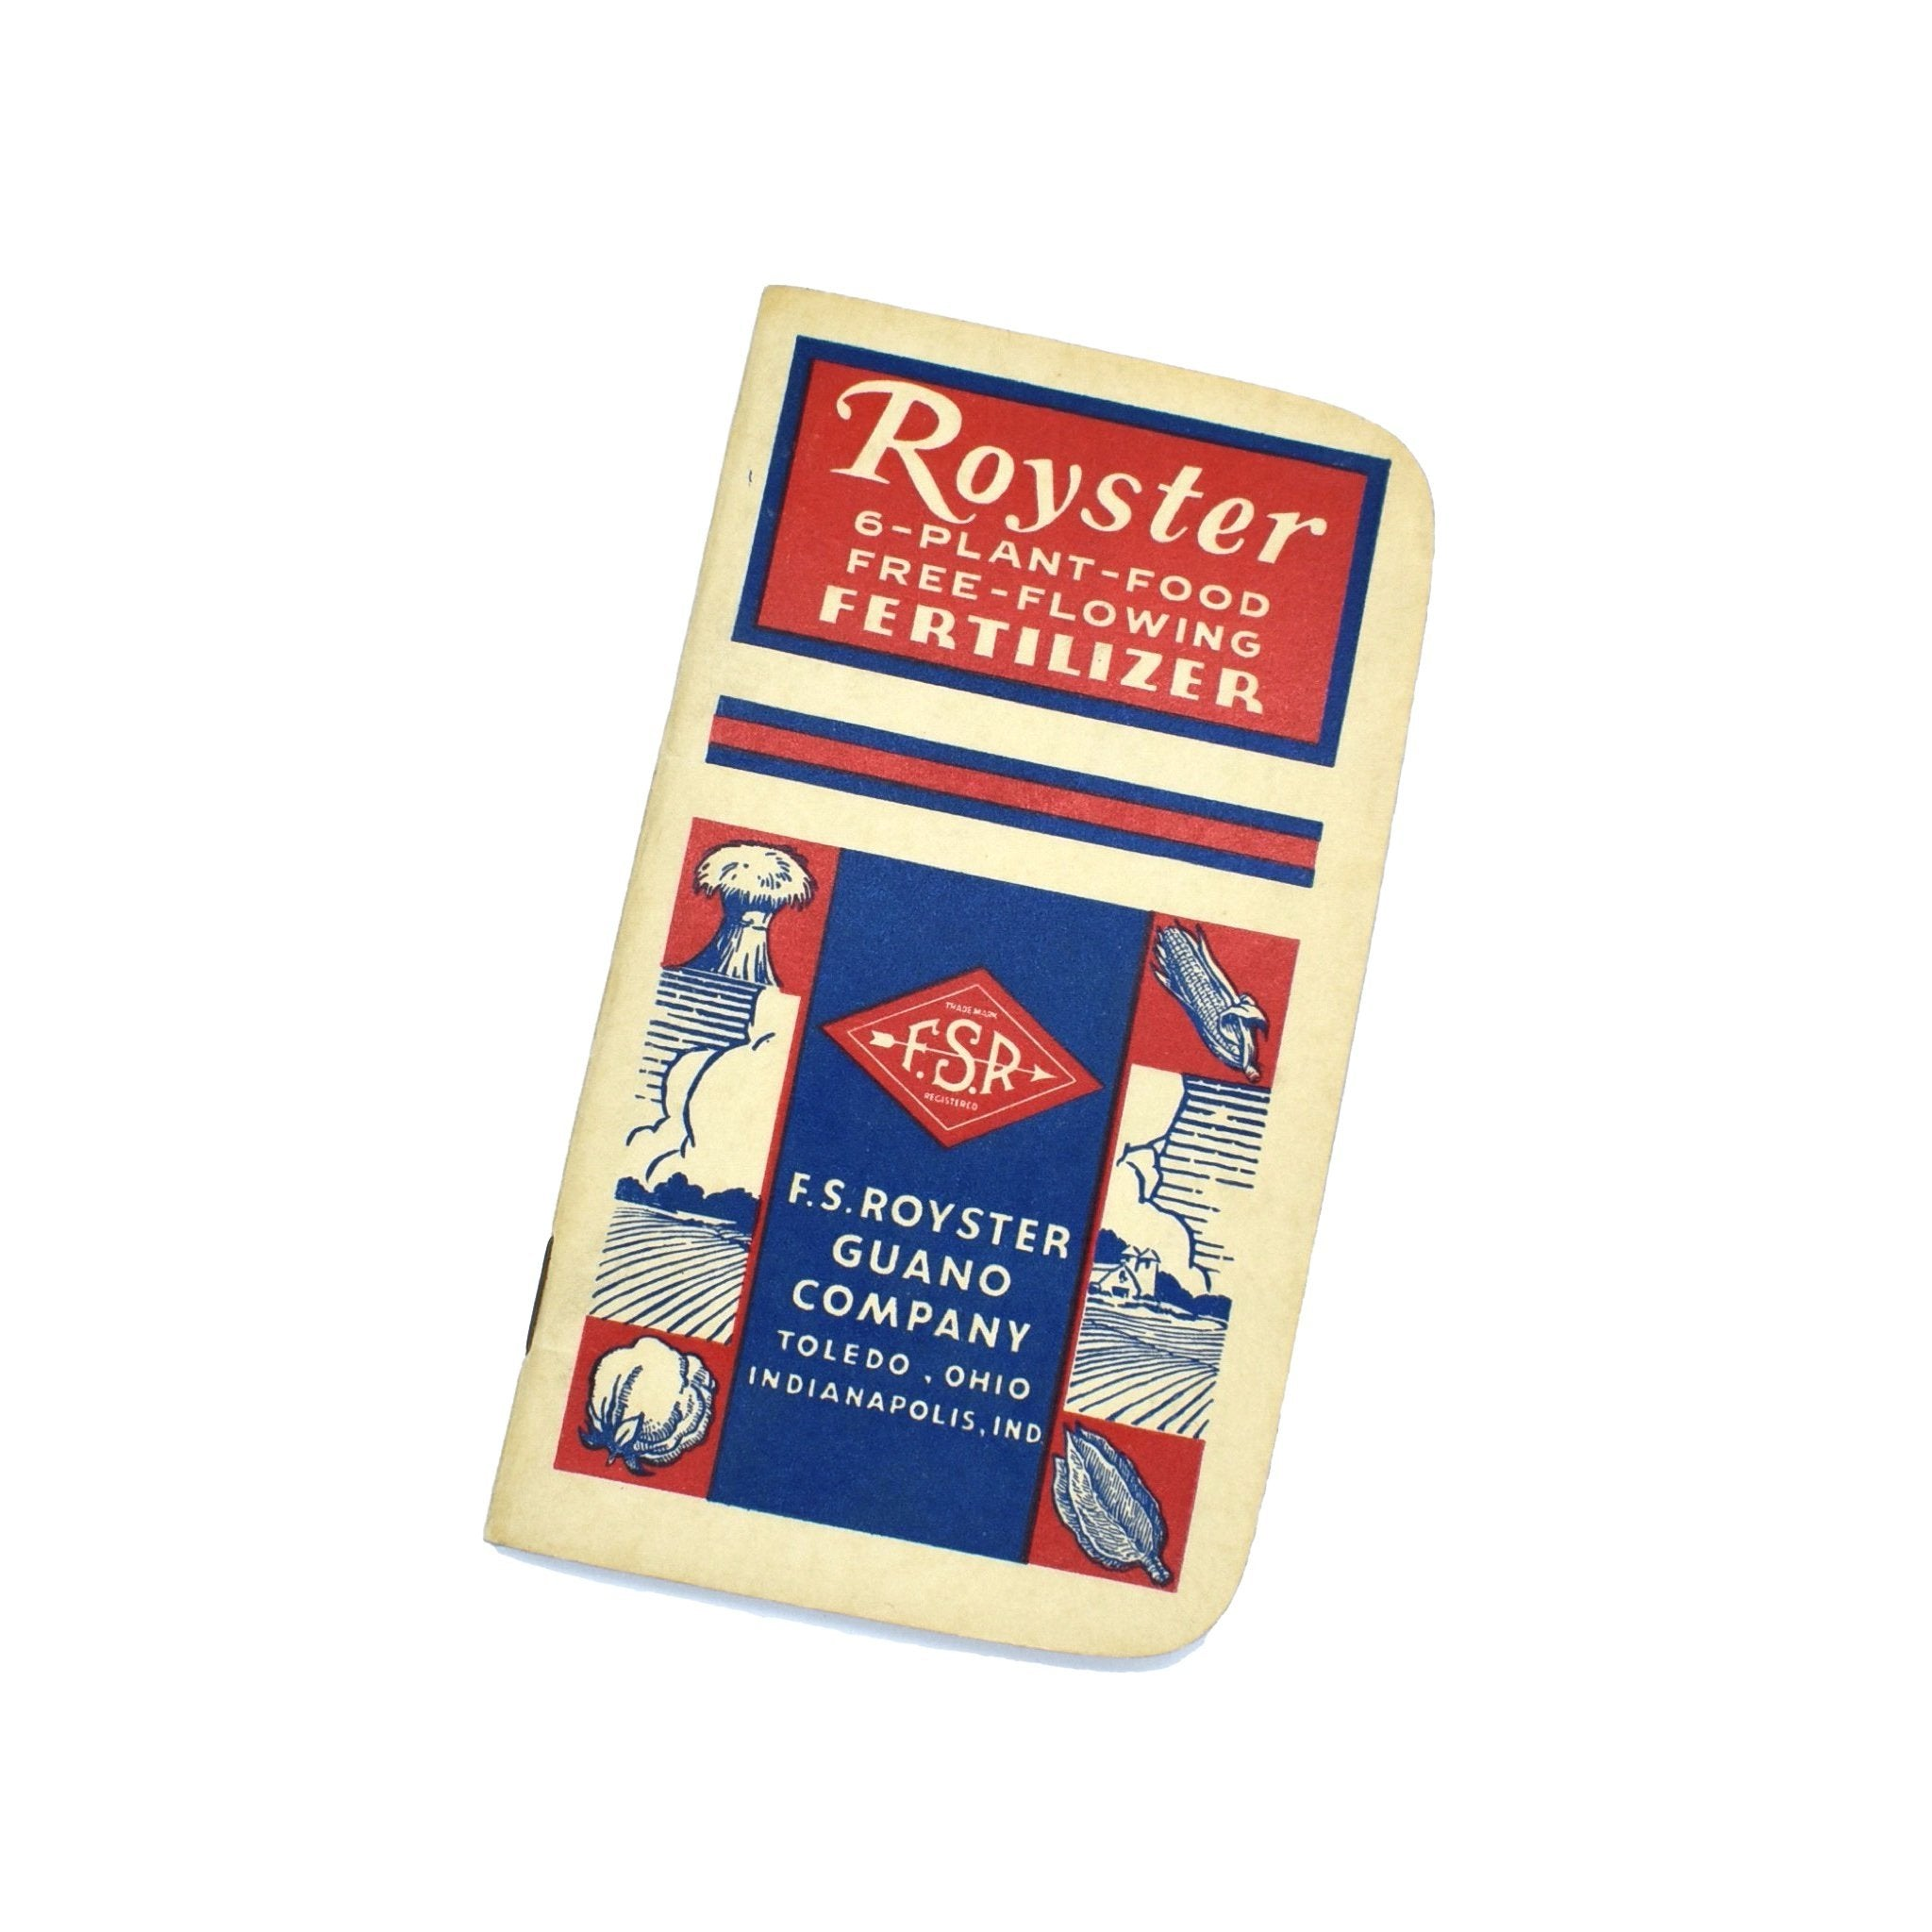 Vintage Memo Book - Royster Fertilizer